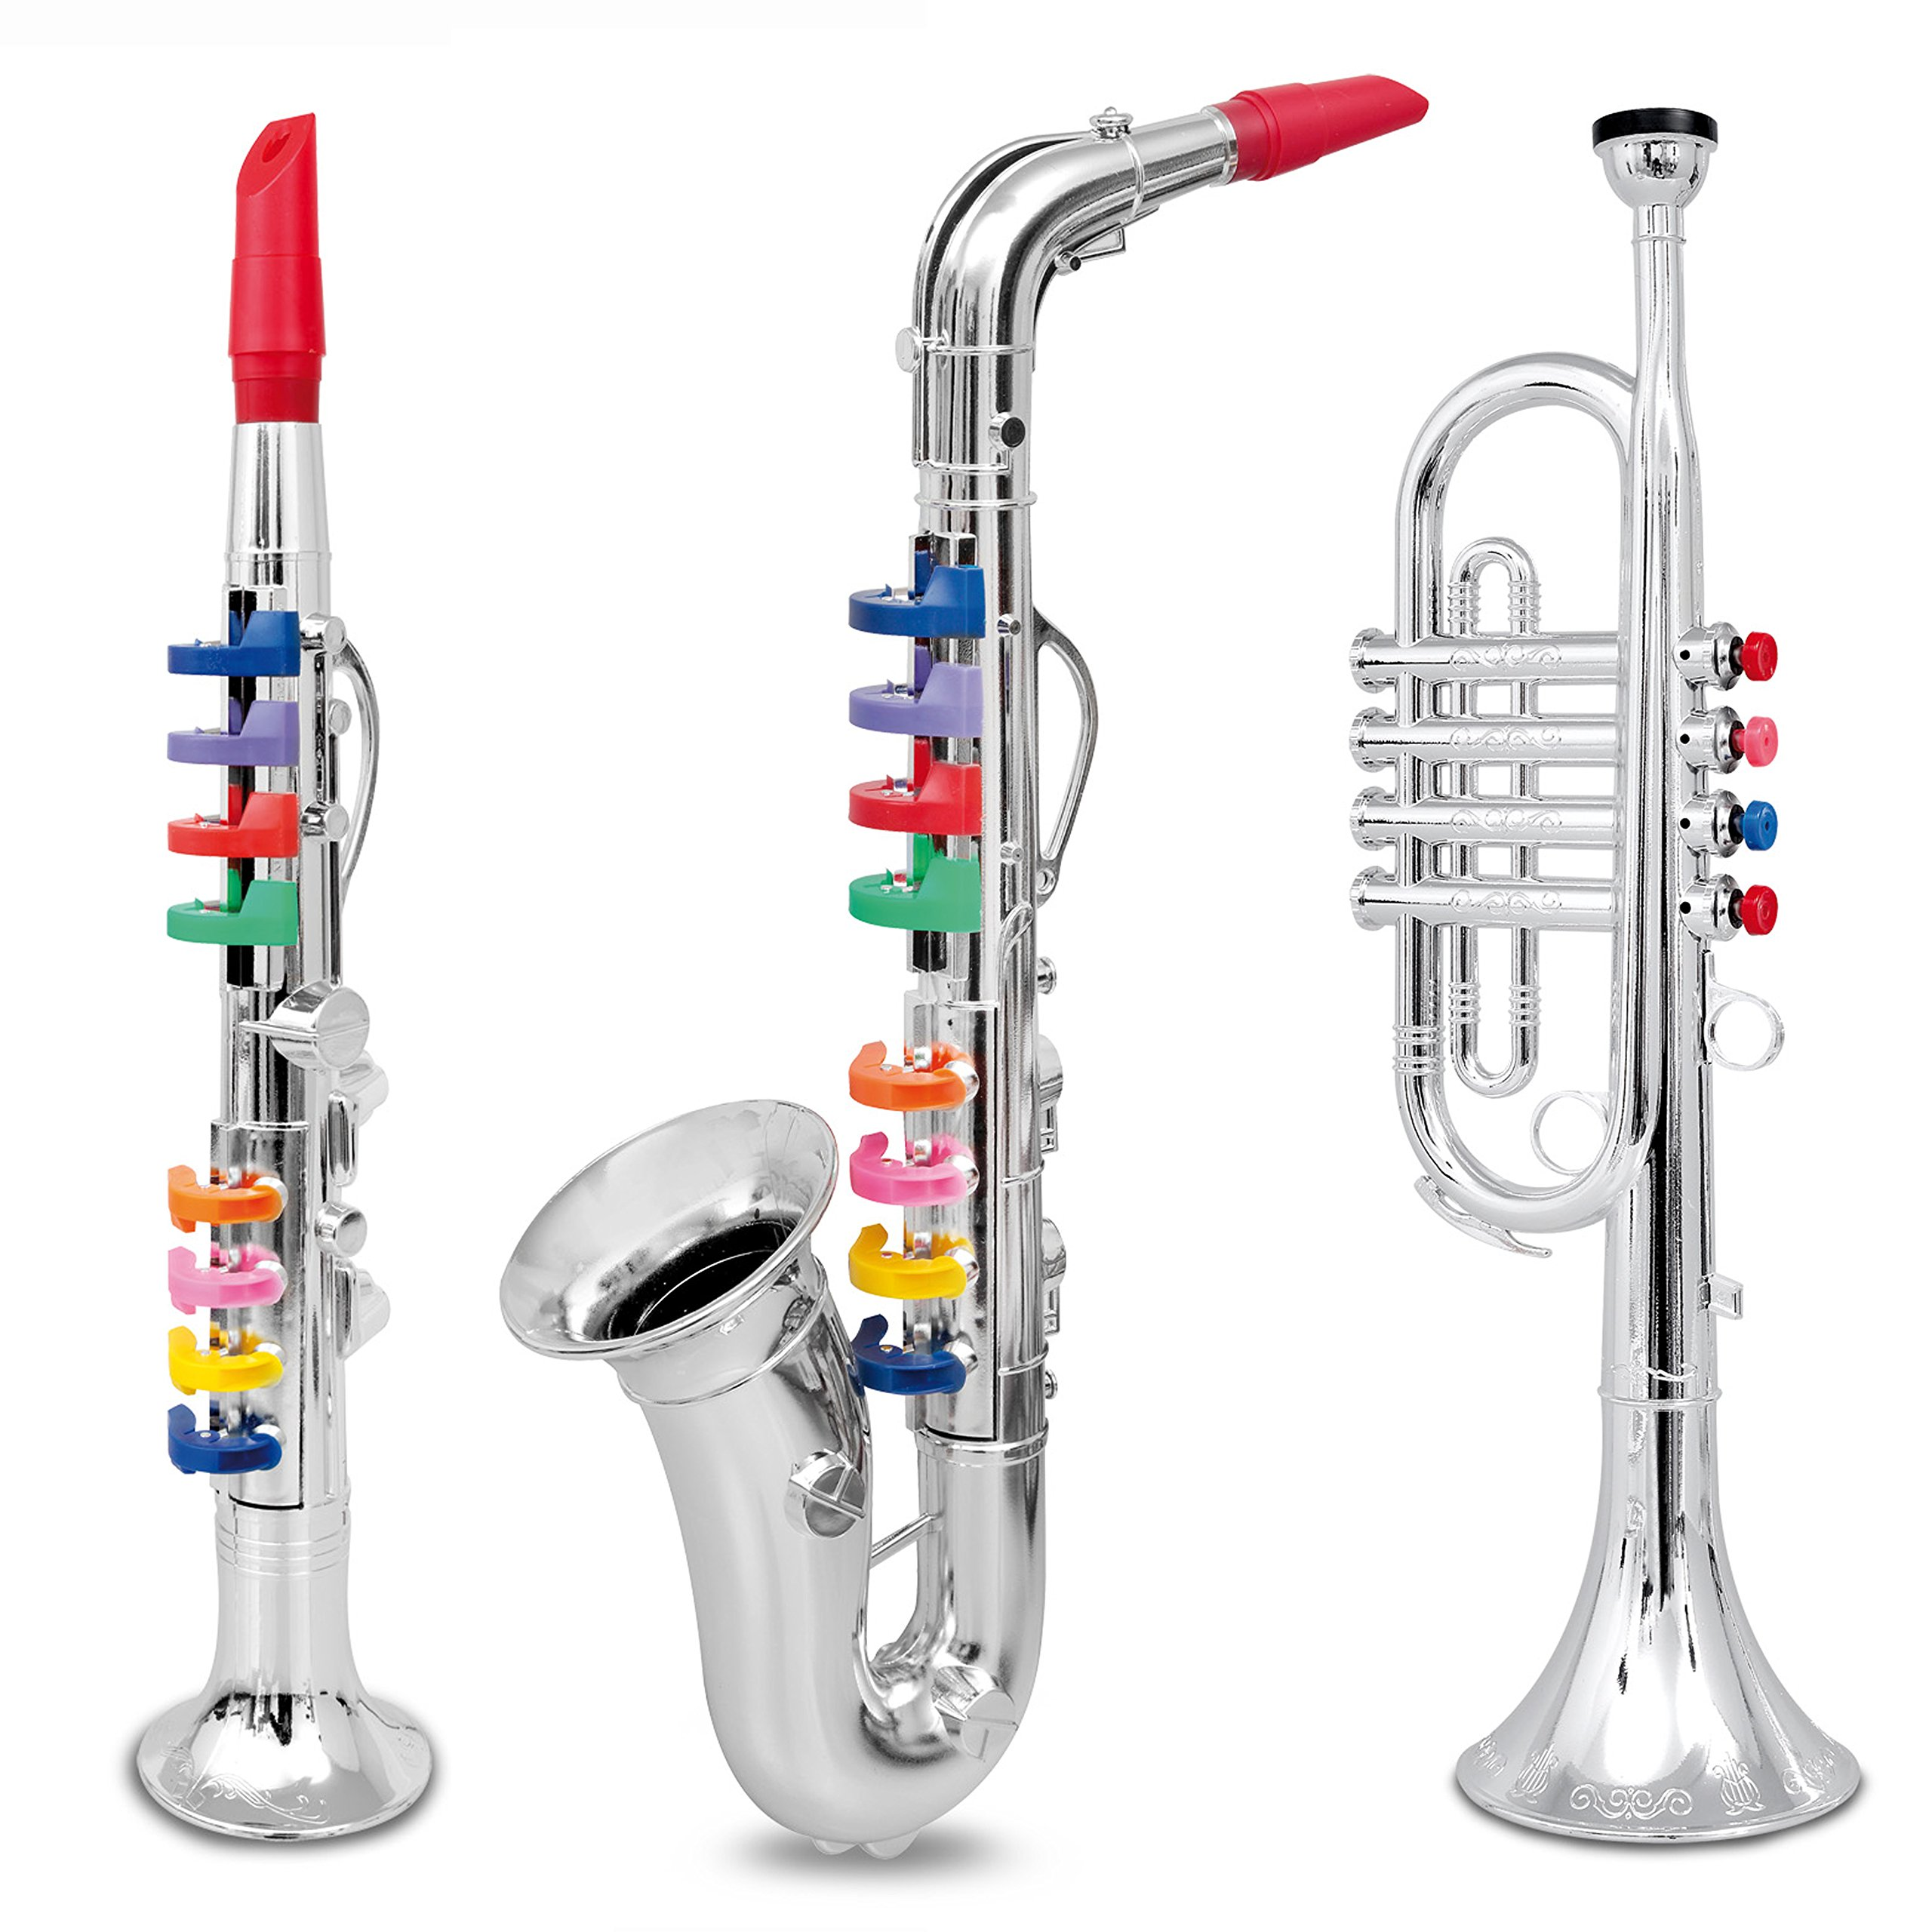 IQ Toys Set of 3 Toy Music Instruments 1. Clarinet 2. Saxophone 3. Trumpet, Combo by IQ Toys (Image #1)